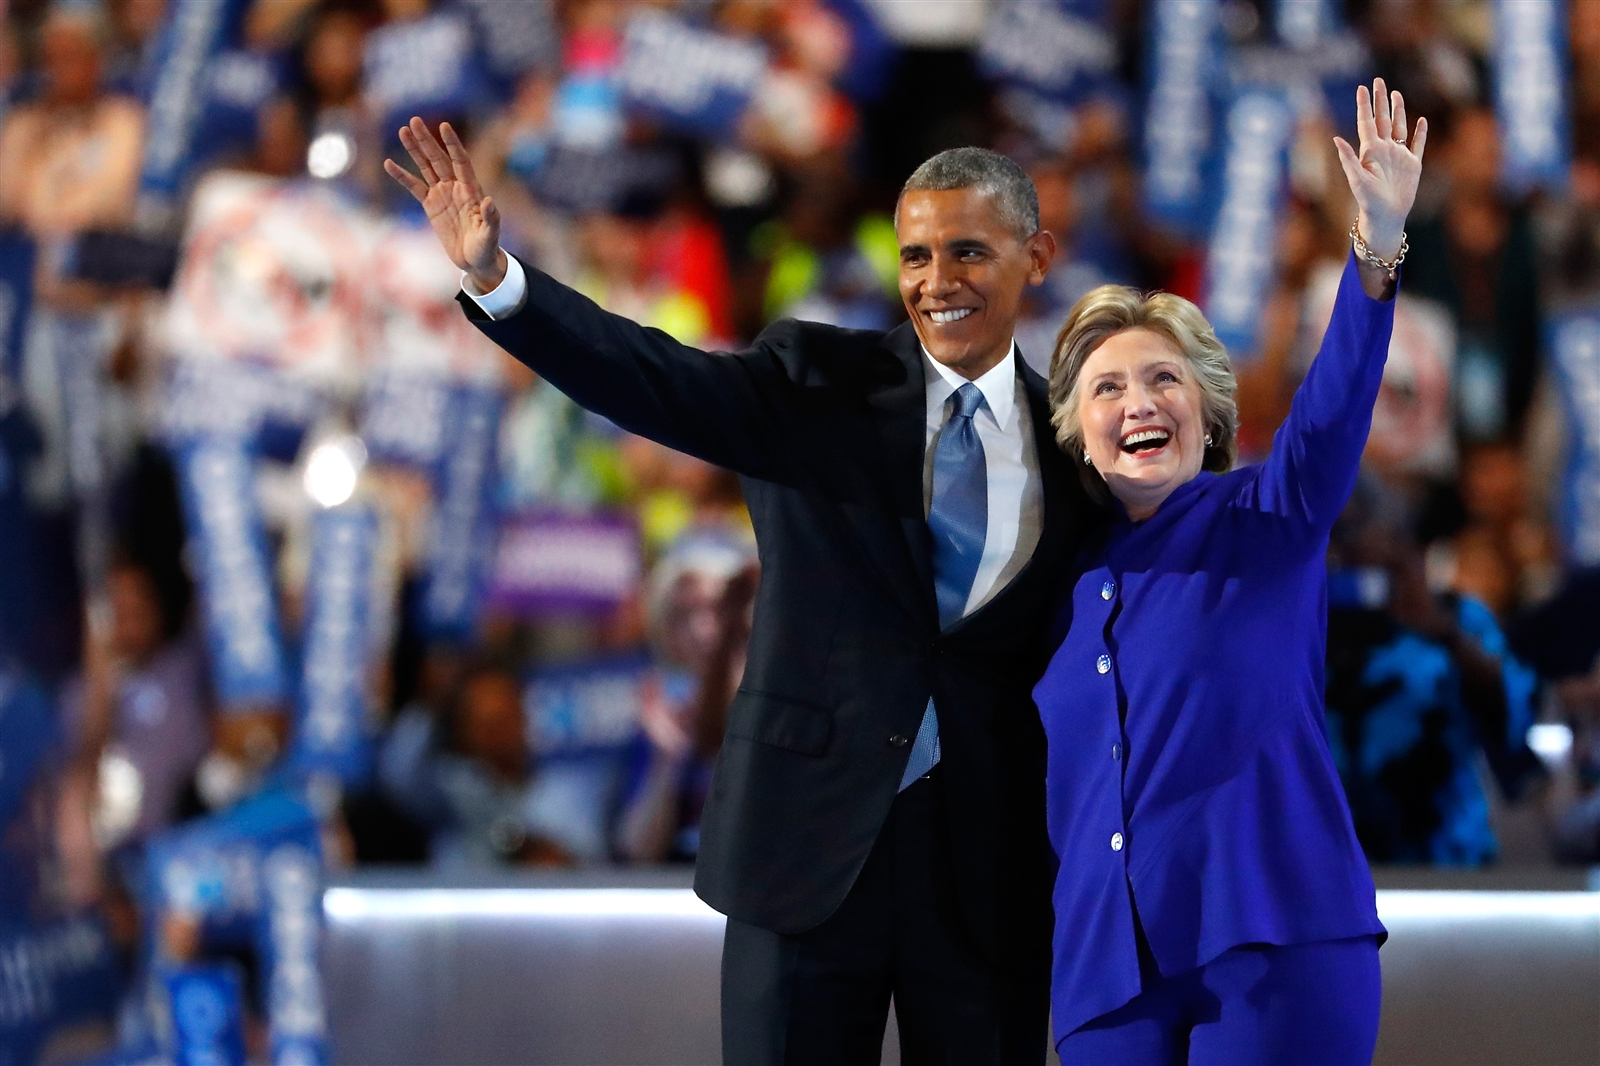 President Barack Obama and Democratic presidential candidate Hillary Clinton wave to the crowd.